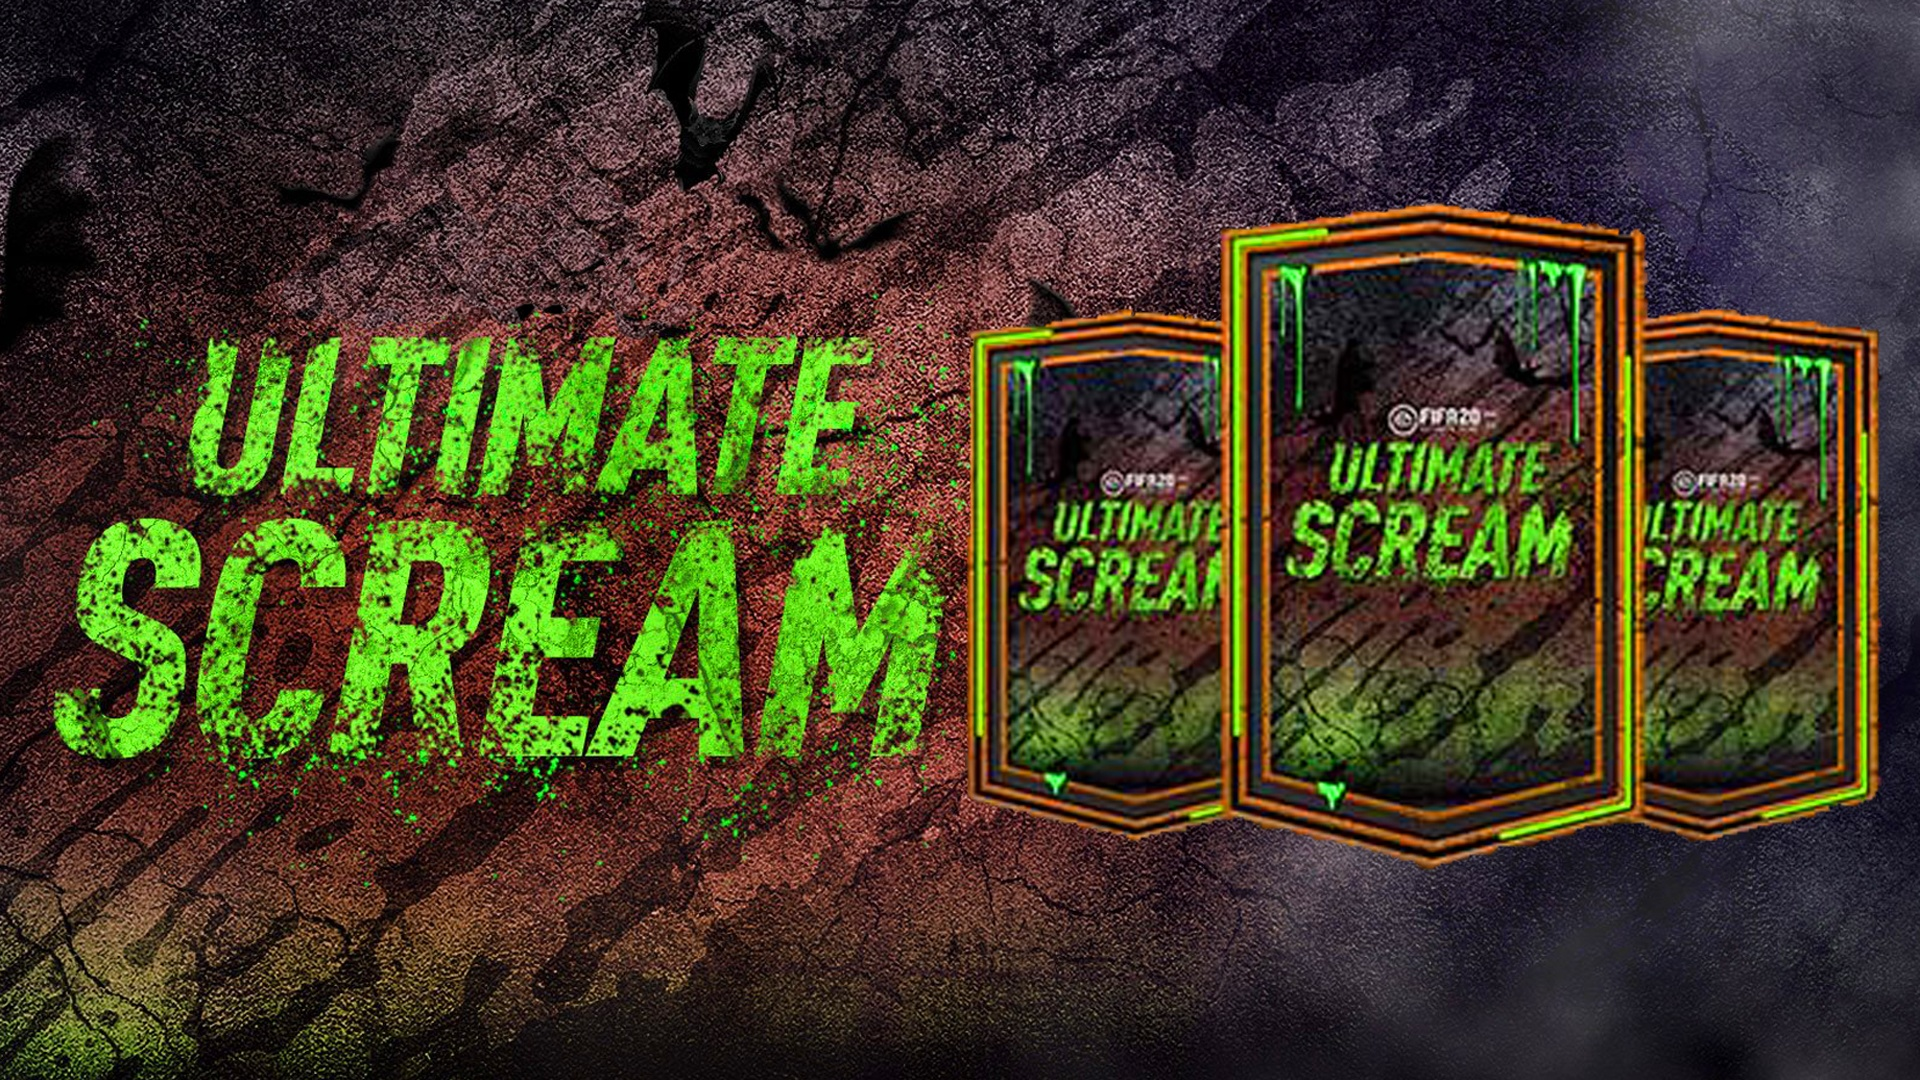 fifa-ultimate-scream